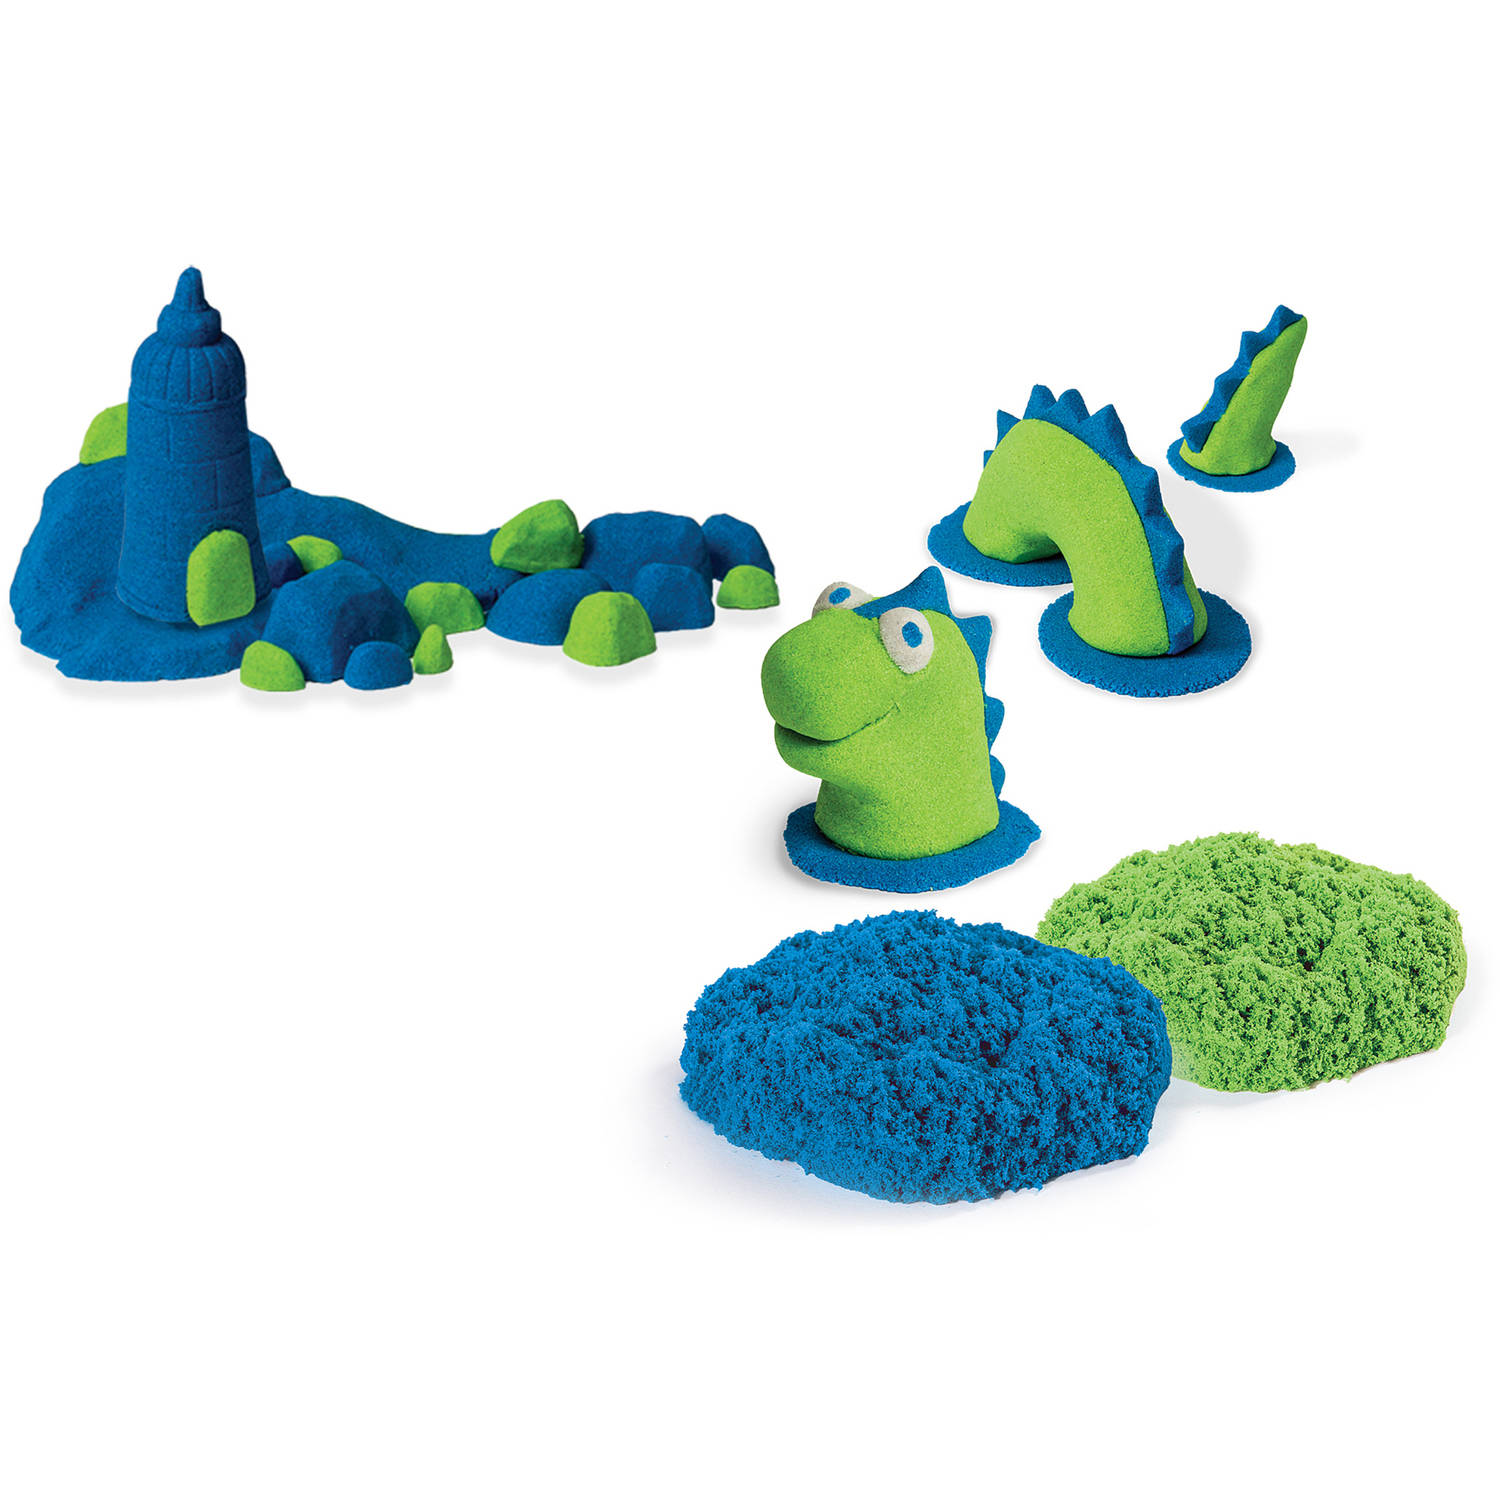 Kinetic Sand Build 1lb Color Pack, Green and Blue